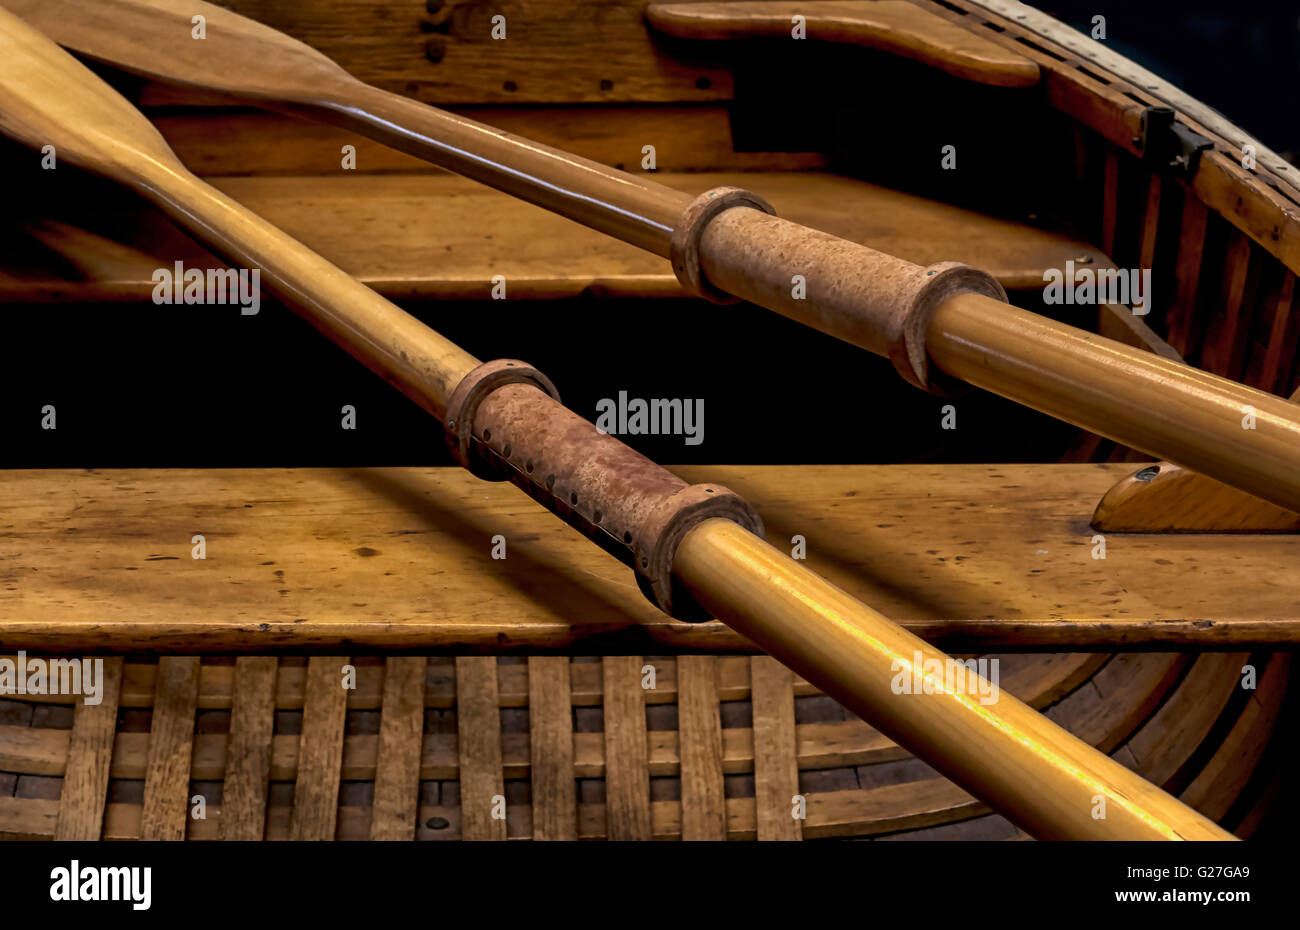 A nautical illustrative  image of oars in a late 1800's row boat.Useful as a background image or wall art. - Stock Image